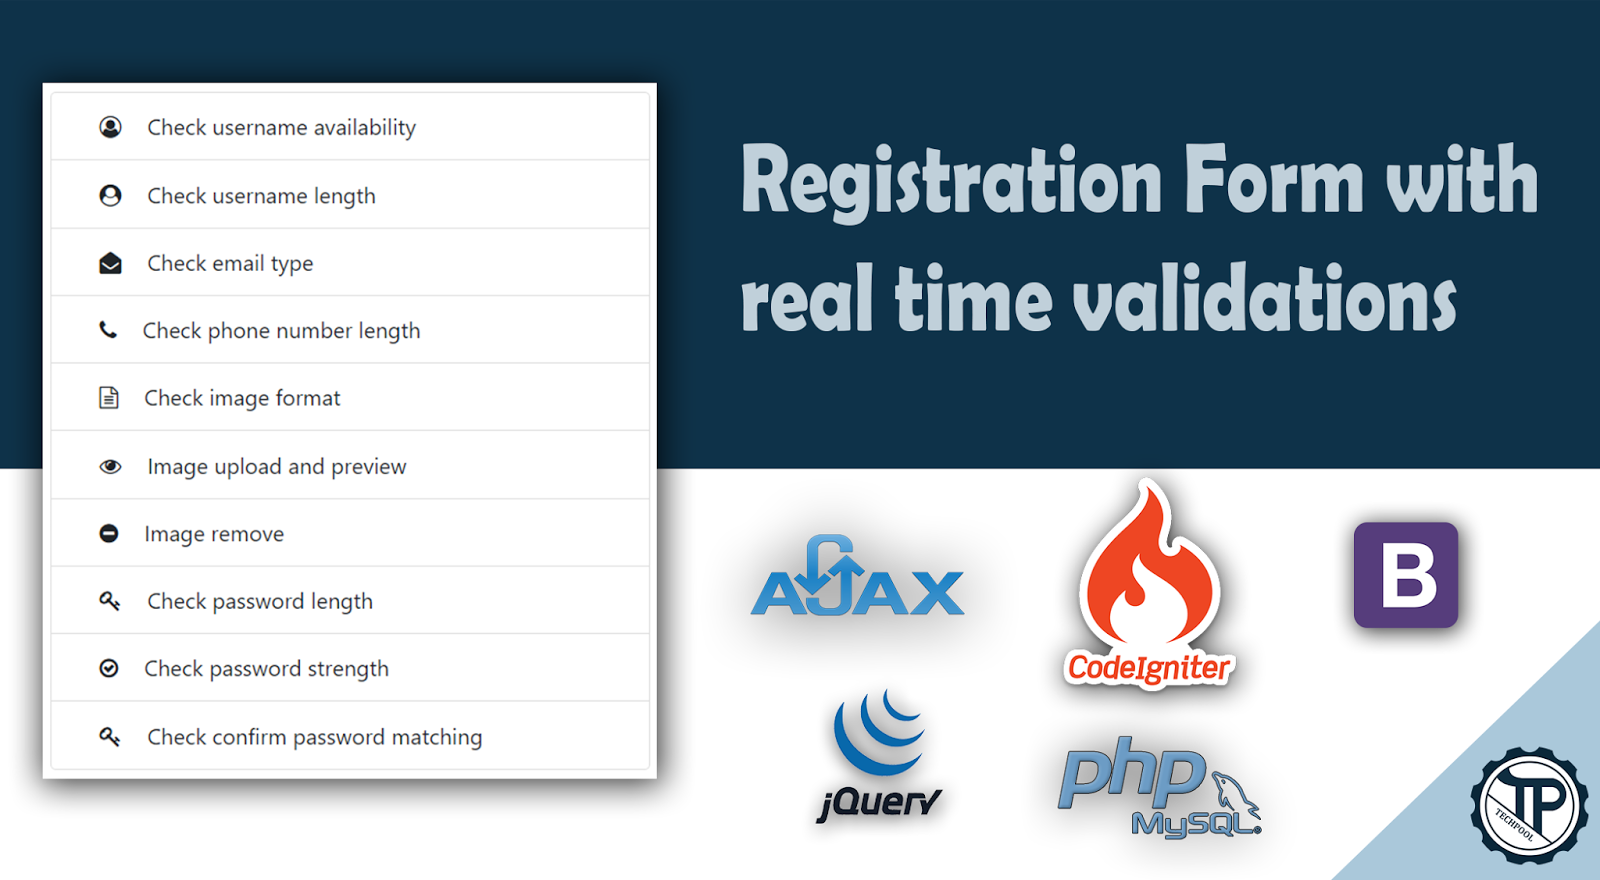 Registration Form with real time validations